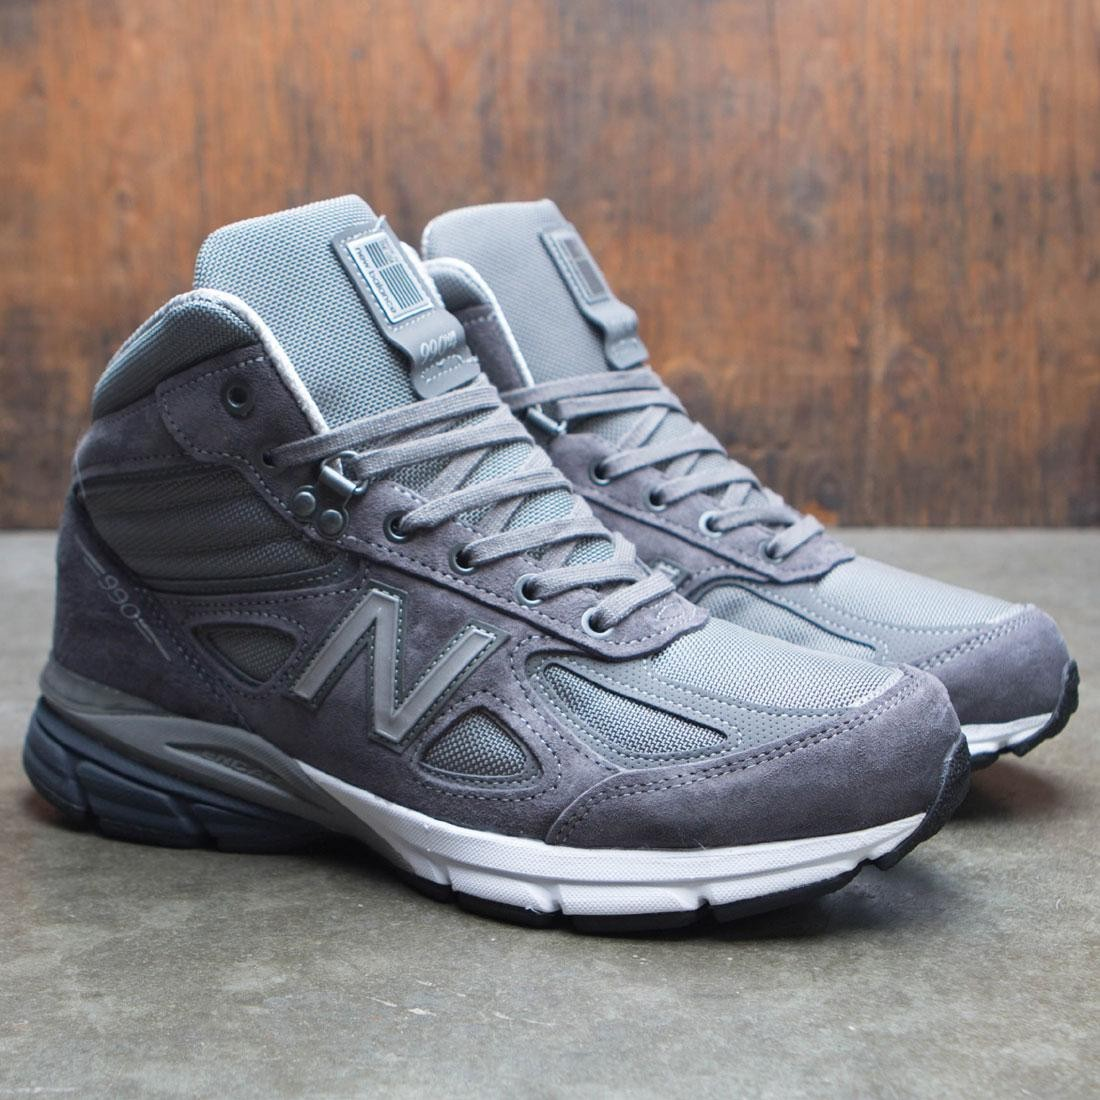 new style 38470 7e52a New Balance Men 990v4 Mid MO990GR4 - Made In USA (gray / black)